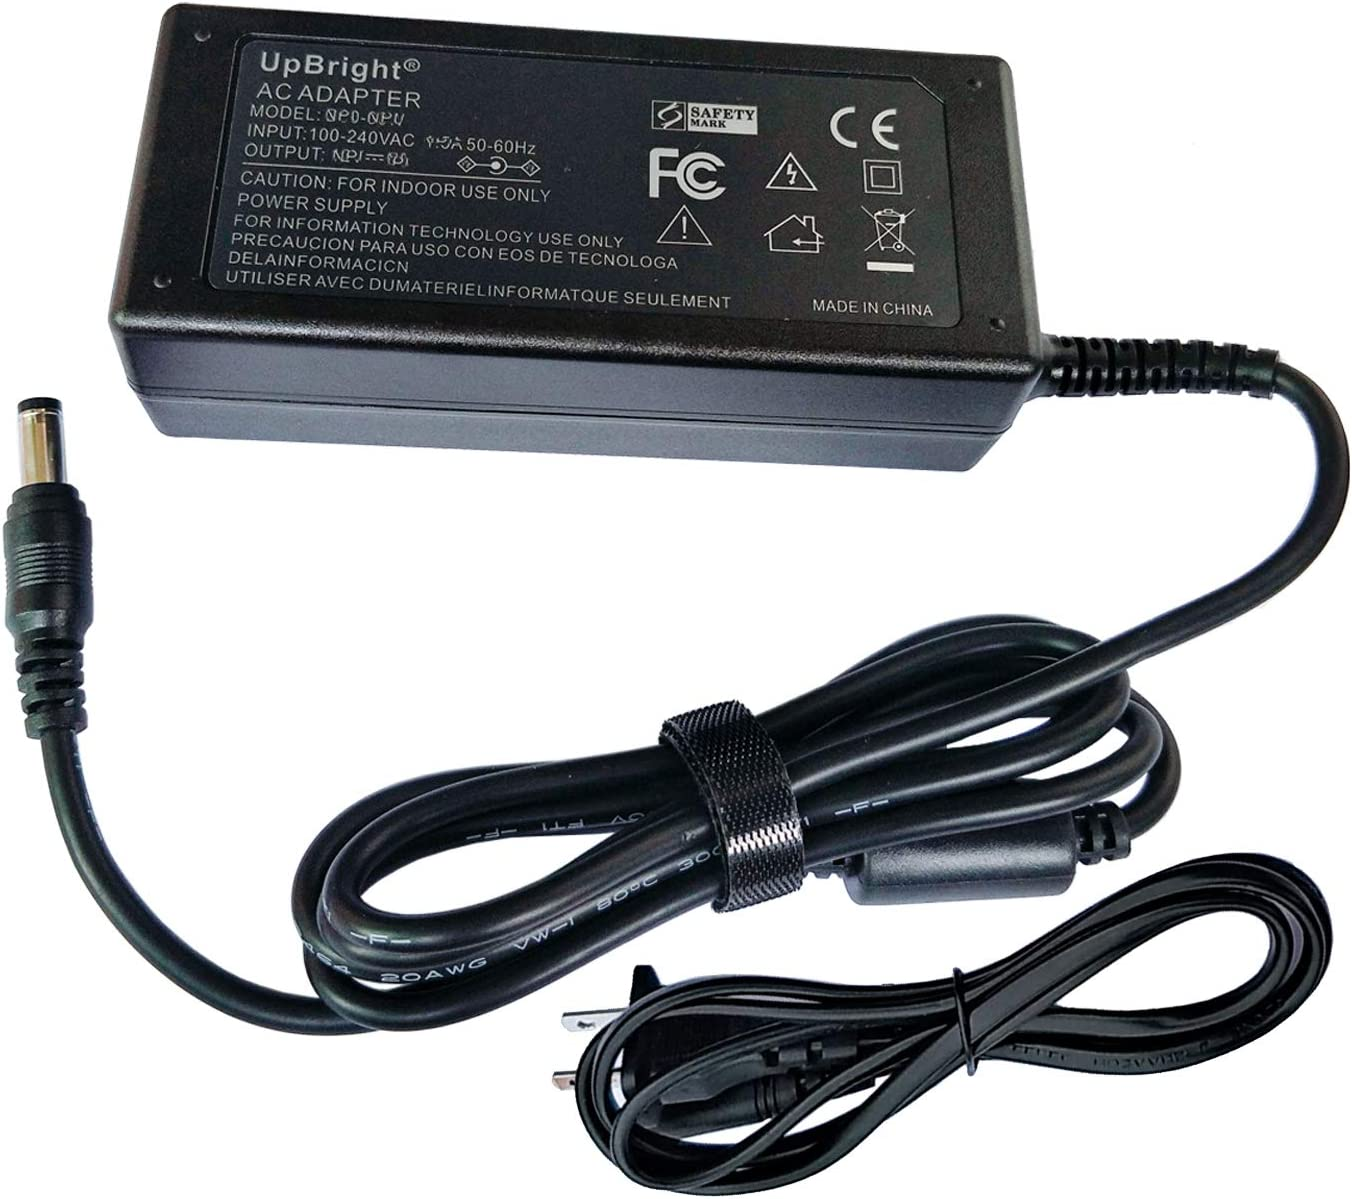 UpBright New Global 12V AC/DC Adapter Compatible with Dell S2216M S2216H 216Mc S2216Hc S2218H S2218Hc S2318H S2318HX S2318Hc LED Backlight LCD Monitor 12VDC 12.0V Power Supply Cord Cable PS Charger